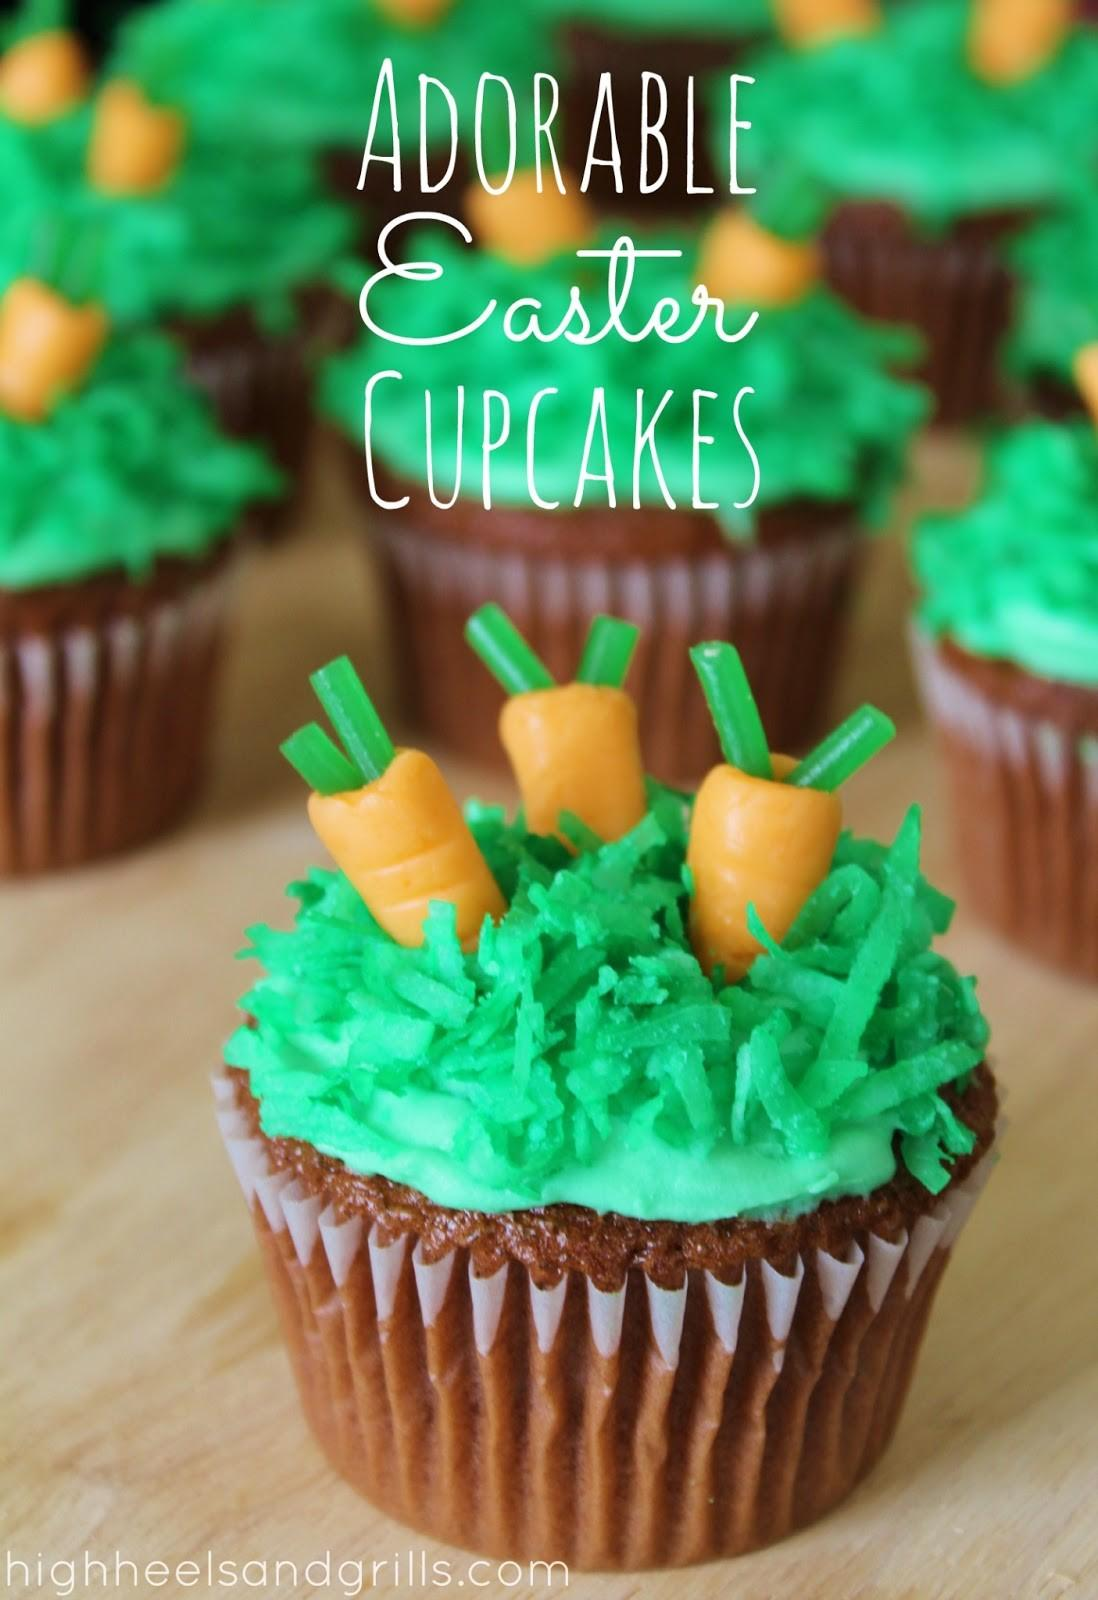 Adorable Easter Cupcakes High Heels Grills